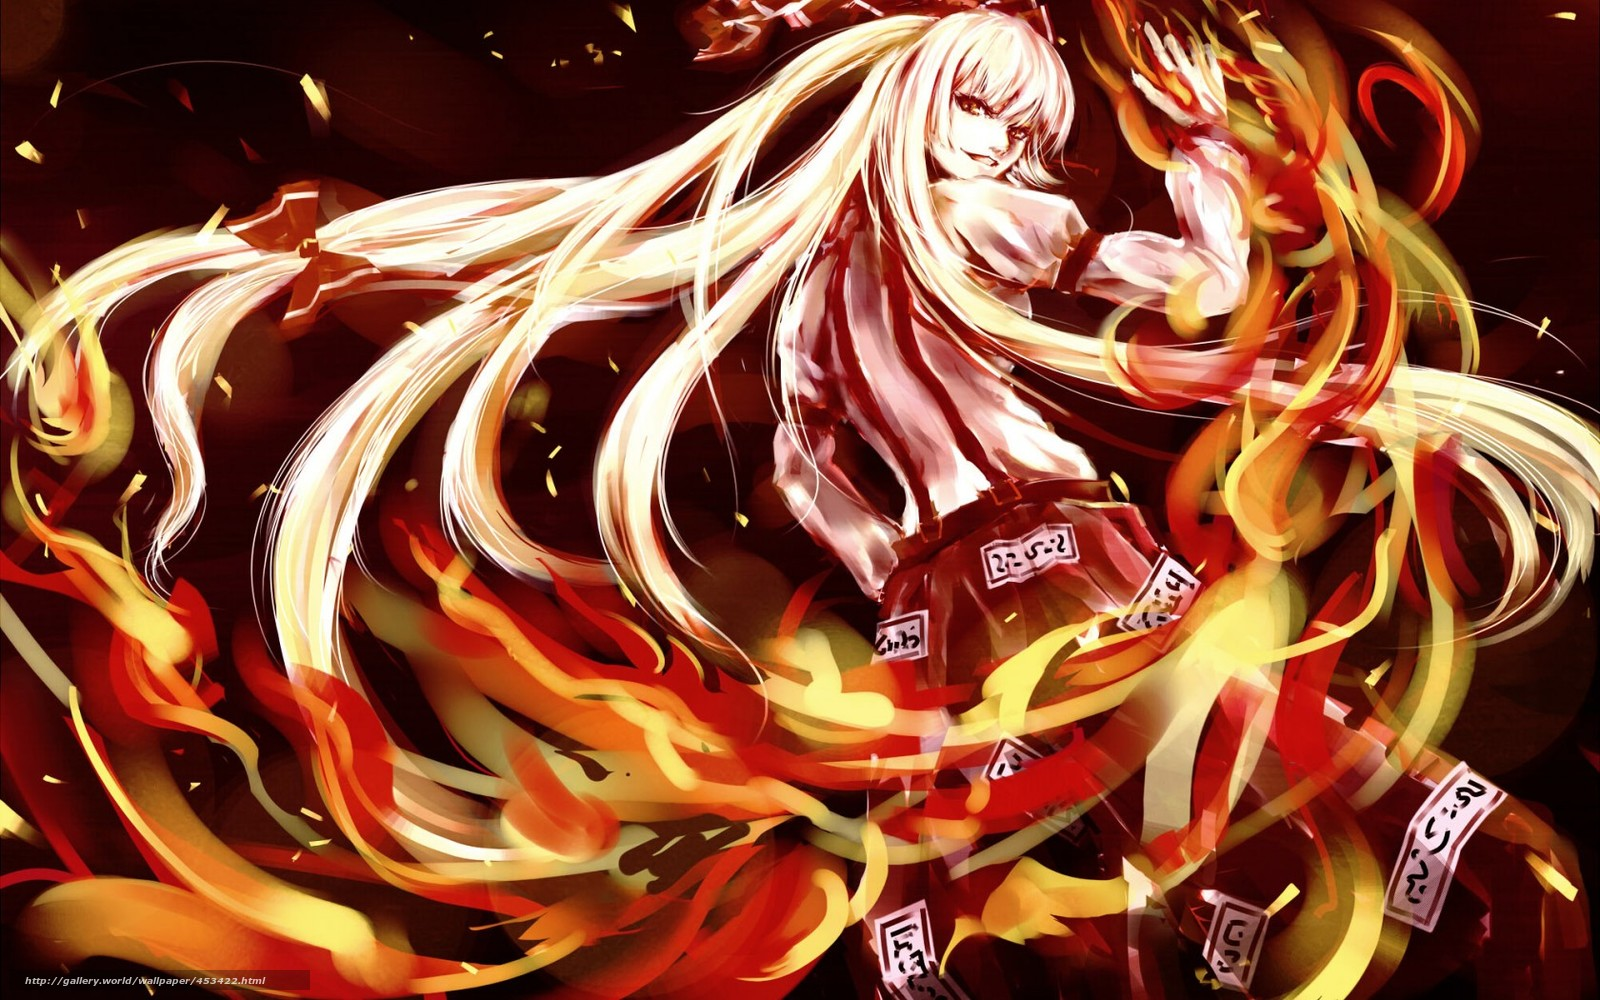 Download wallpaper girl view smile fire free desktop - Anime girls with fire ...